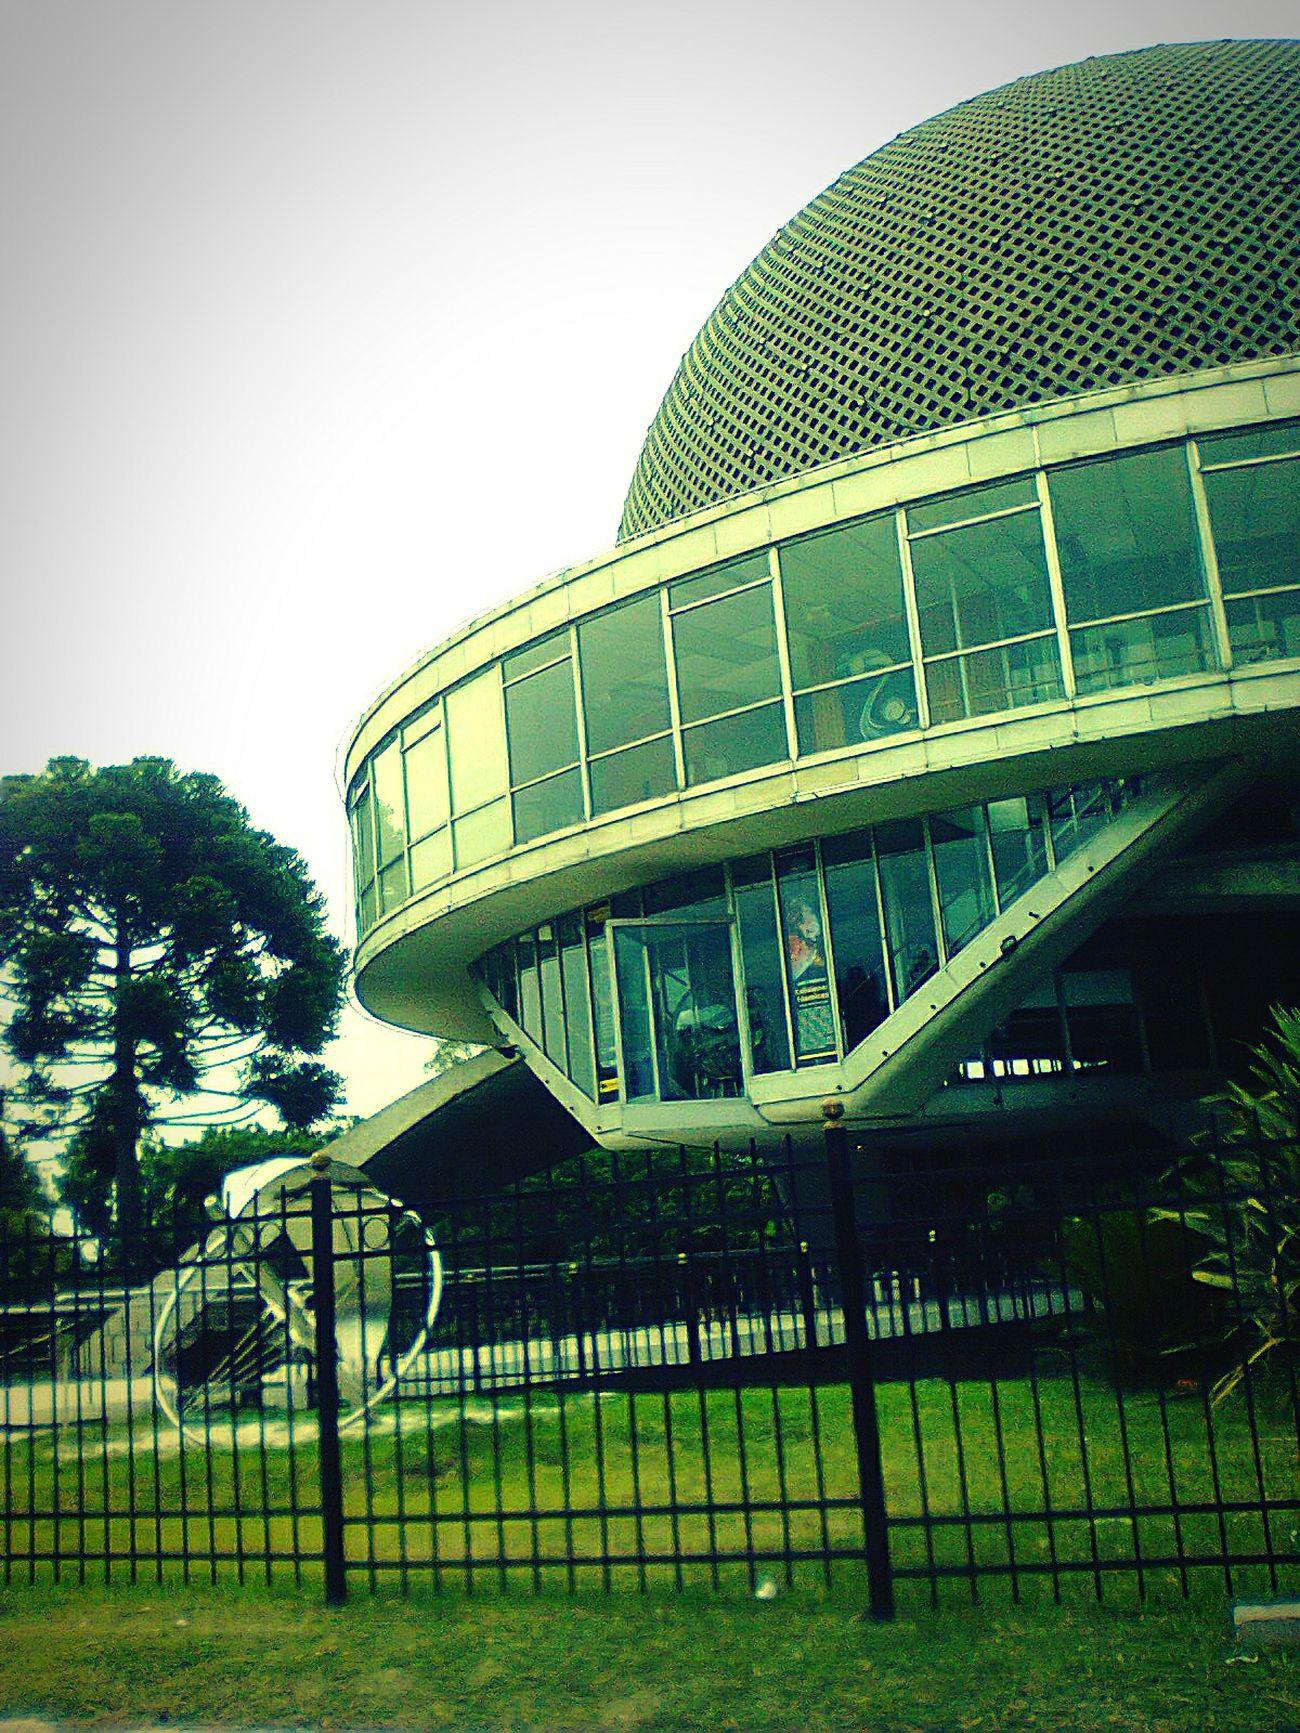 Planetario. Buenos Aires, Argentina. December 2014. Theory Architecture Tourism Study Argentina Holidays Green Nature Tourist Attraction